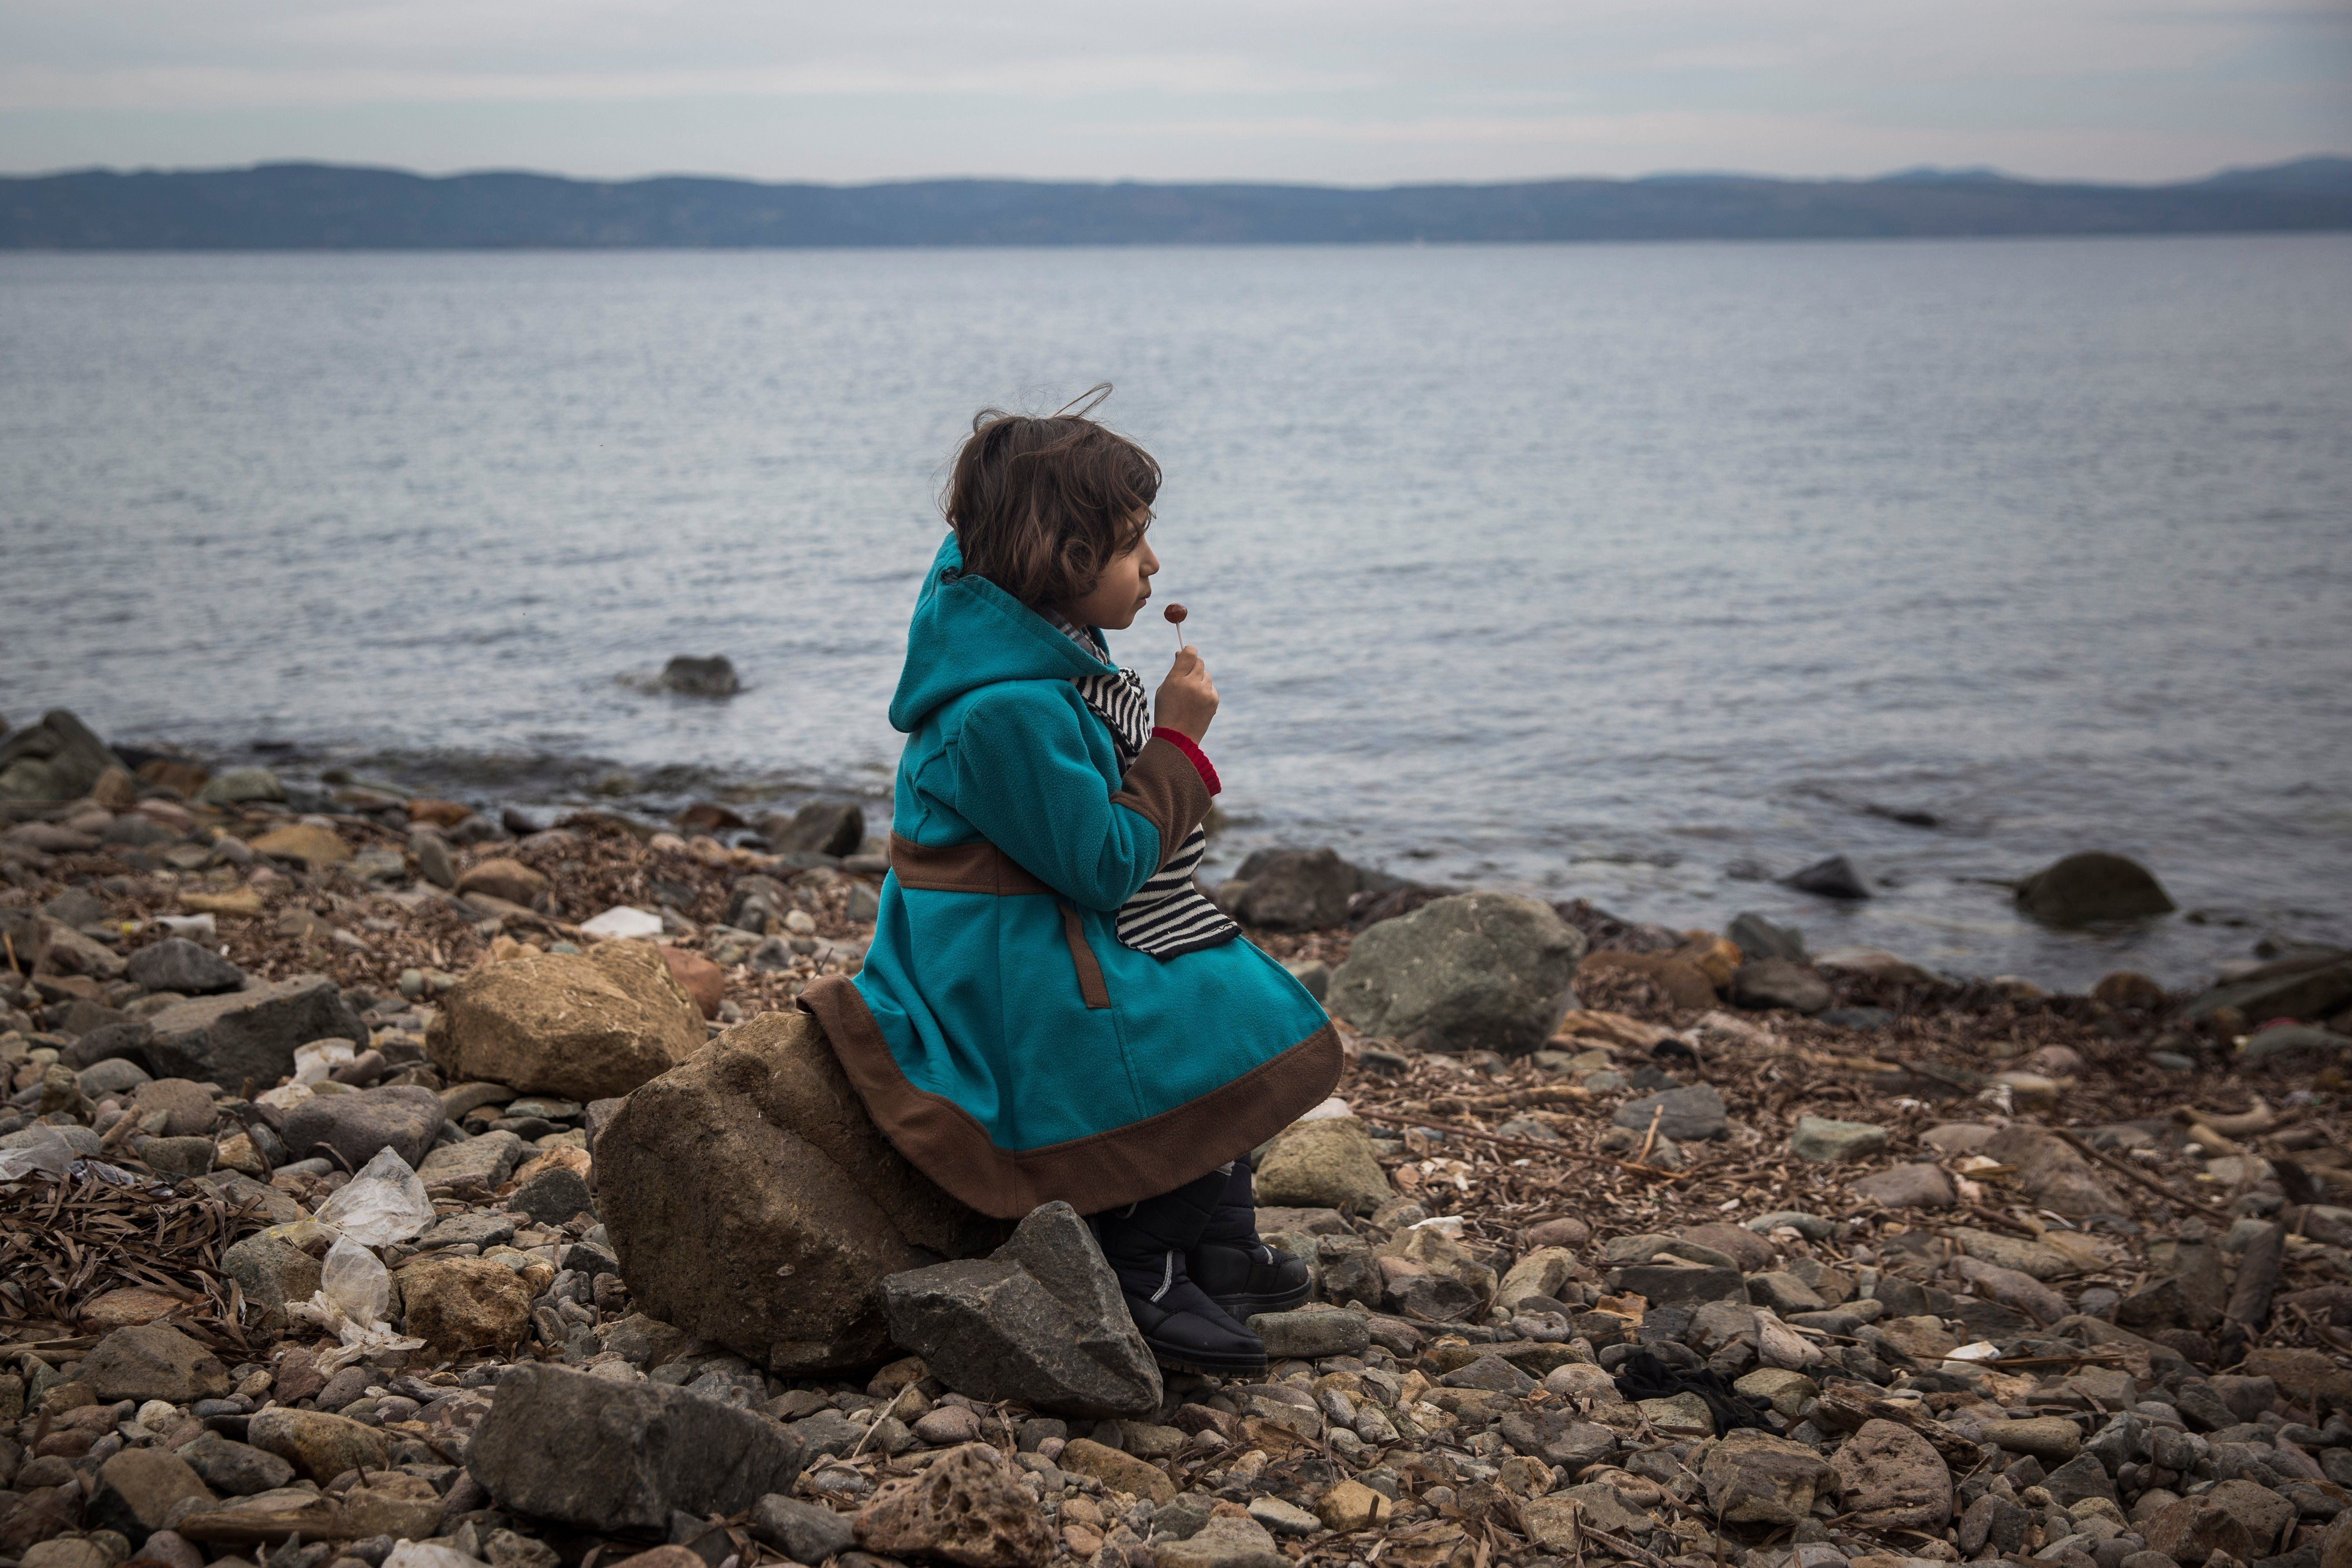 A Syrian girl eats a lollipop after her arrival on the Greek island of Lesbos on a small boat from the Turkish coast. The Greek authorities reported that 1,244 refugees have been rescued from frail craft in just three days this week, as thousands continue to arrive on the Greek islands Photograph: Santi Palacios/AP